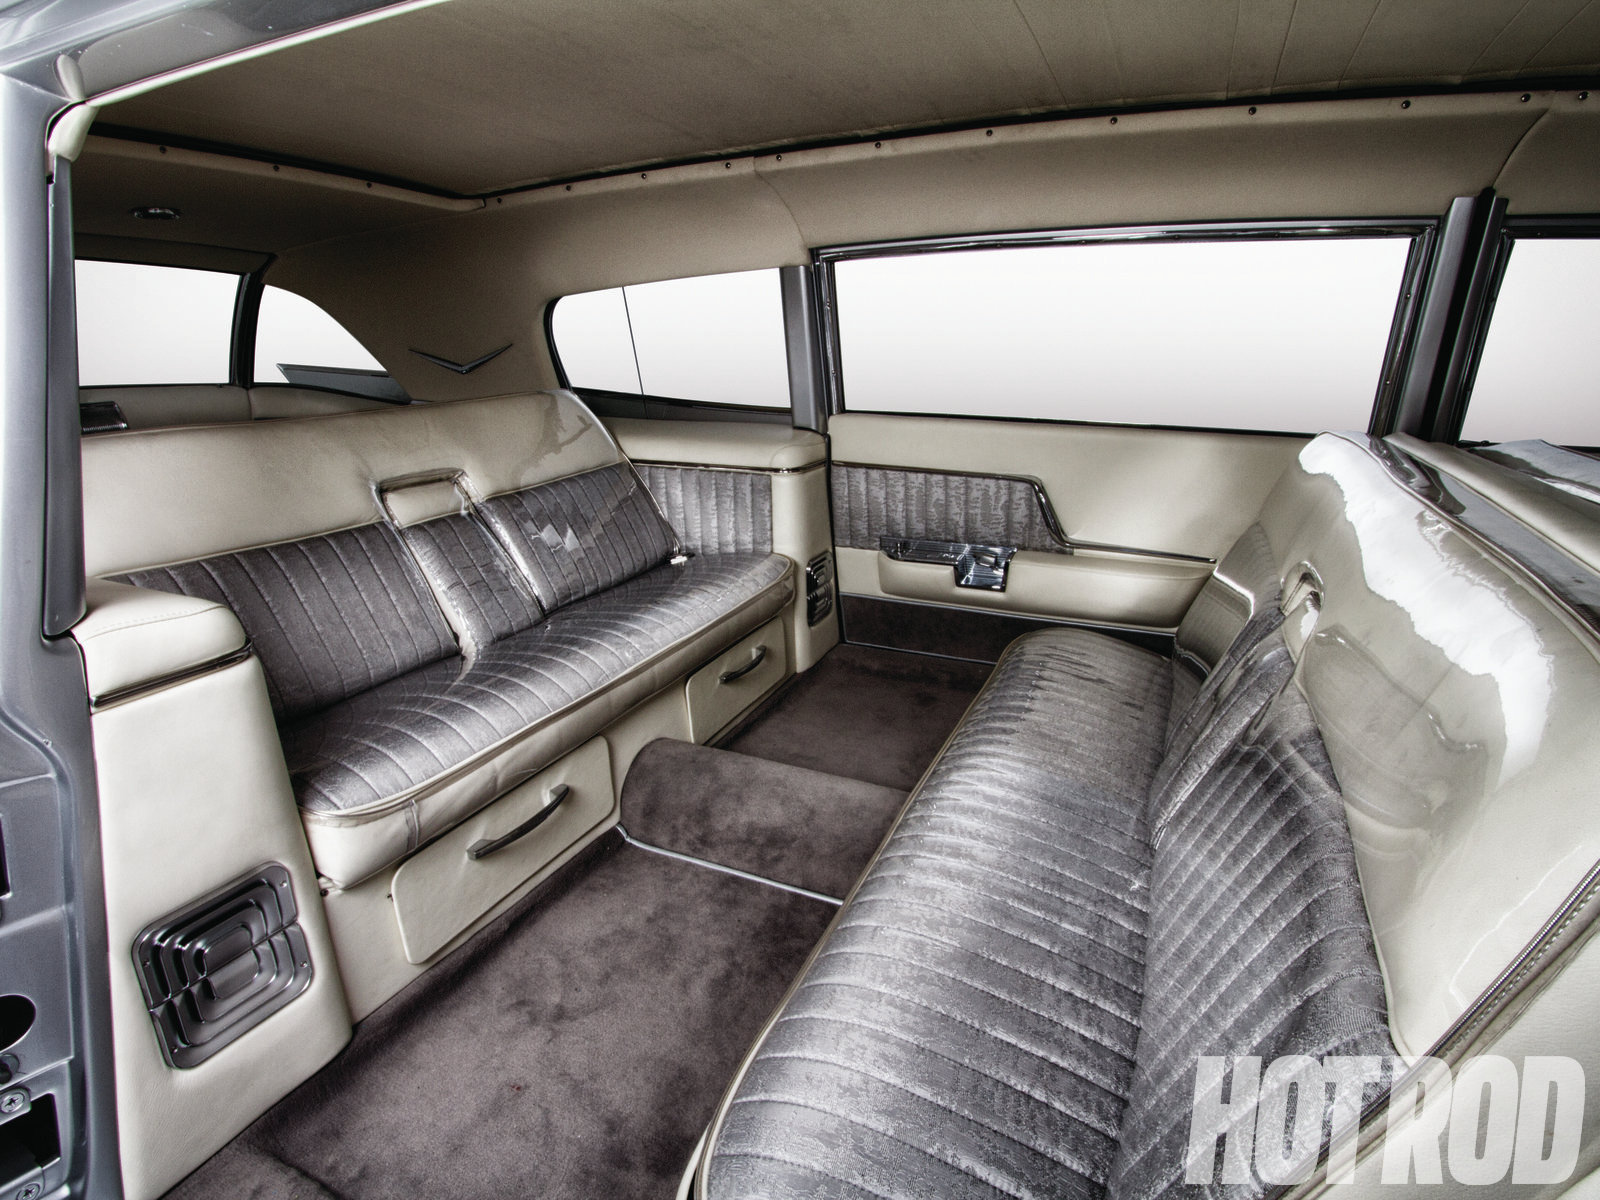 The interior might look all original, but it's far from it. The door panels have '57 fresh air vents that cover the speakers and interior lights, the door handles are '62 Cadillac, and the rear seat is all custom.